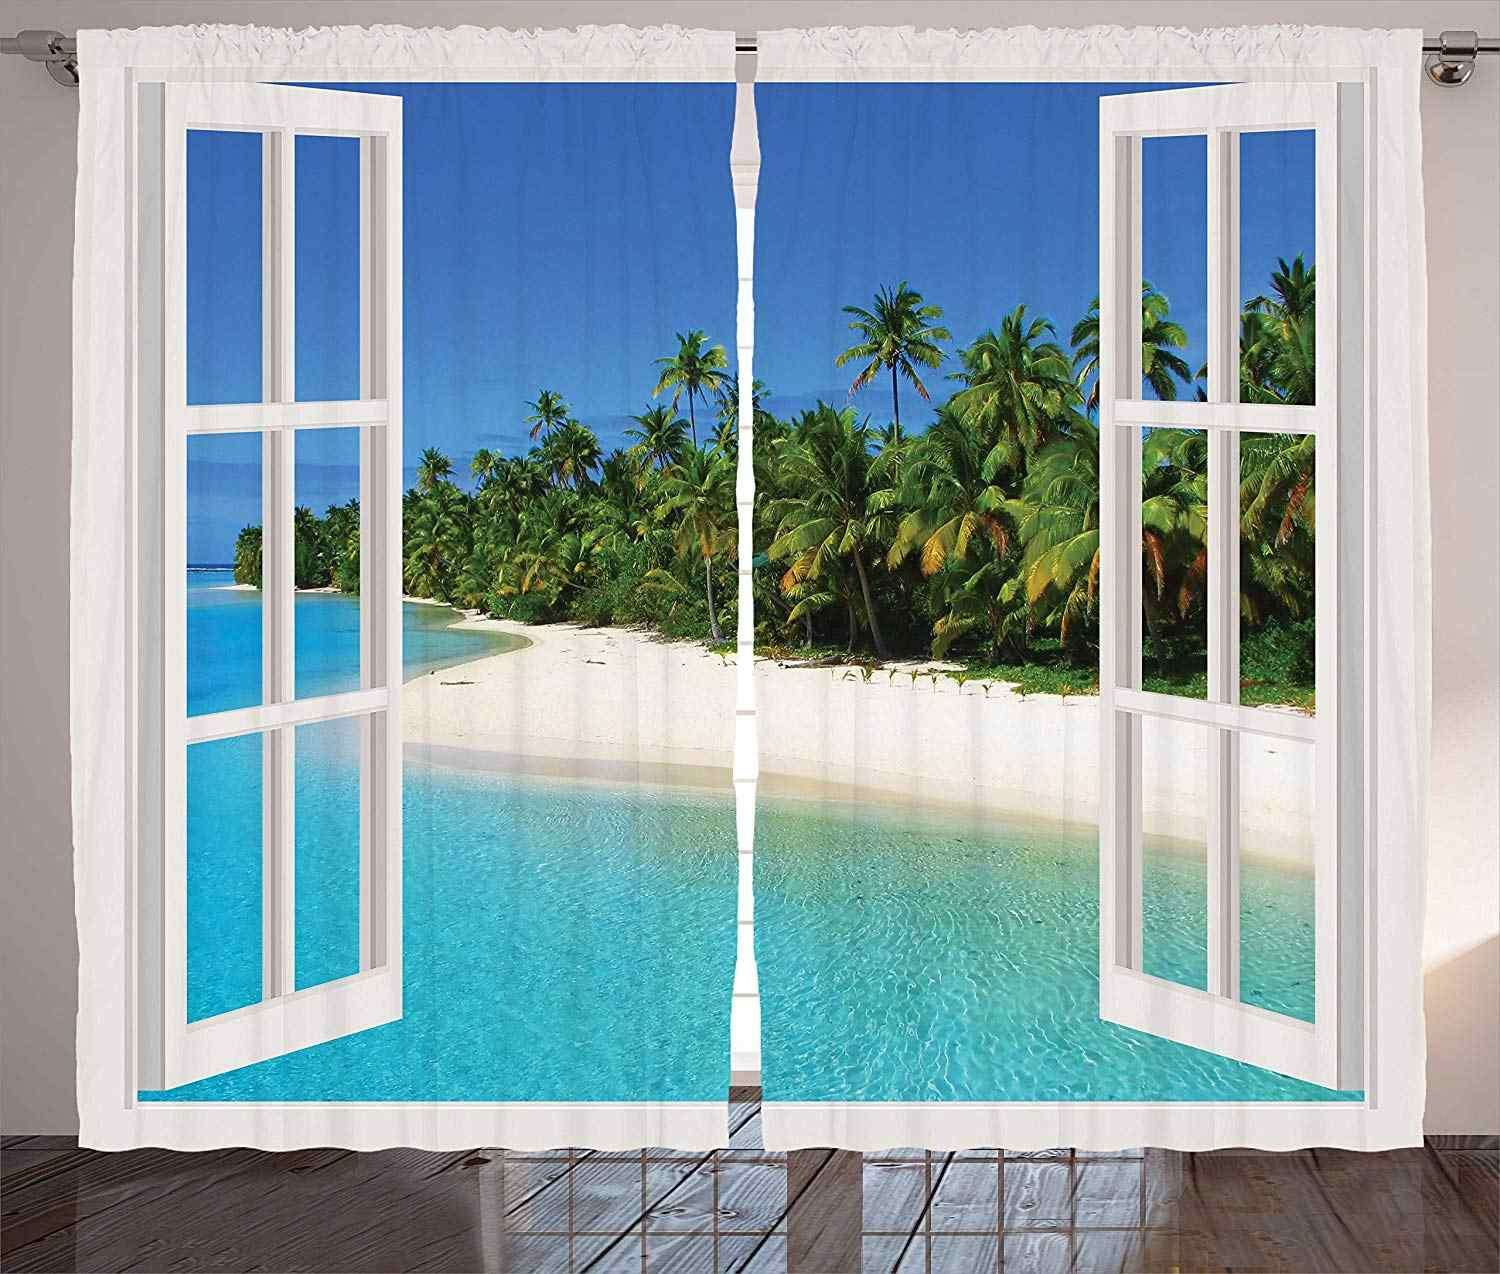 Turquoise Curtains Ocean Paradise Island View from Gazebo Palm Tree Beach Theme Pictures Arts Living Room Bedroom Window Drapes